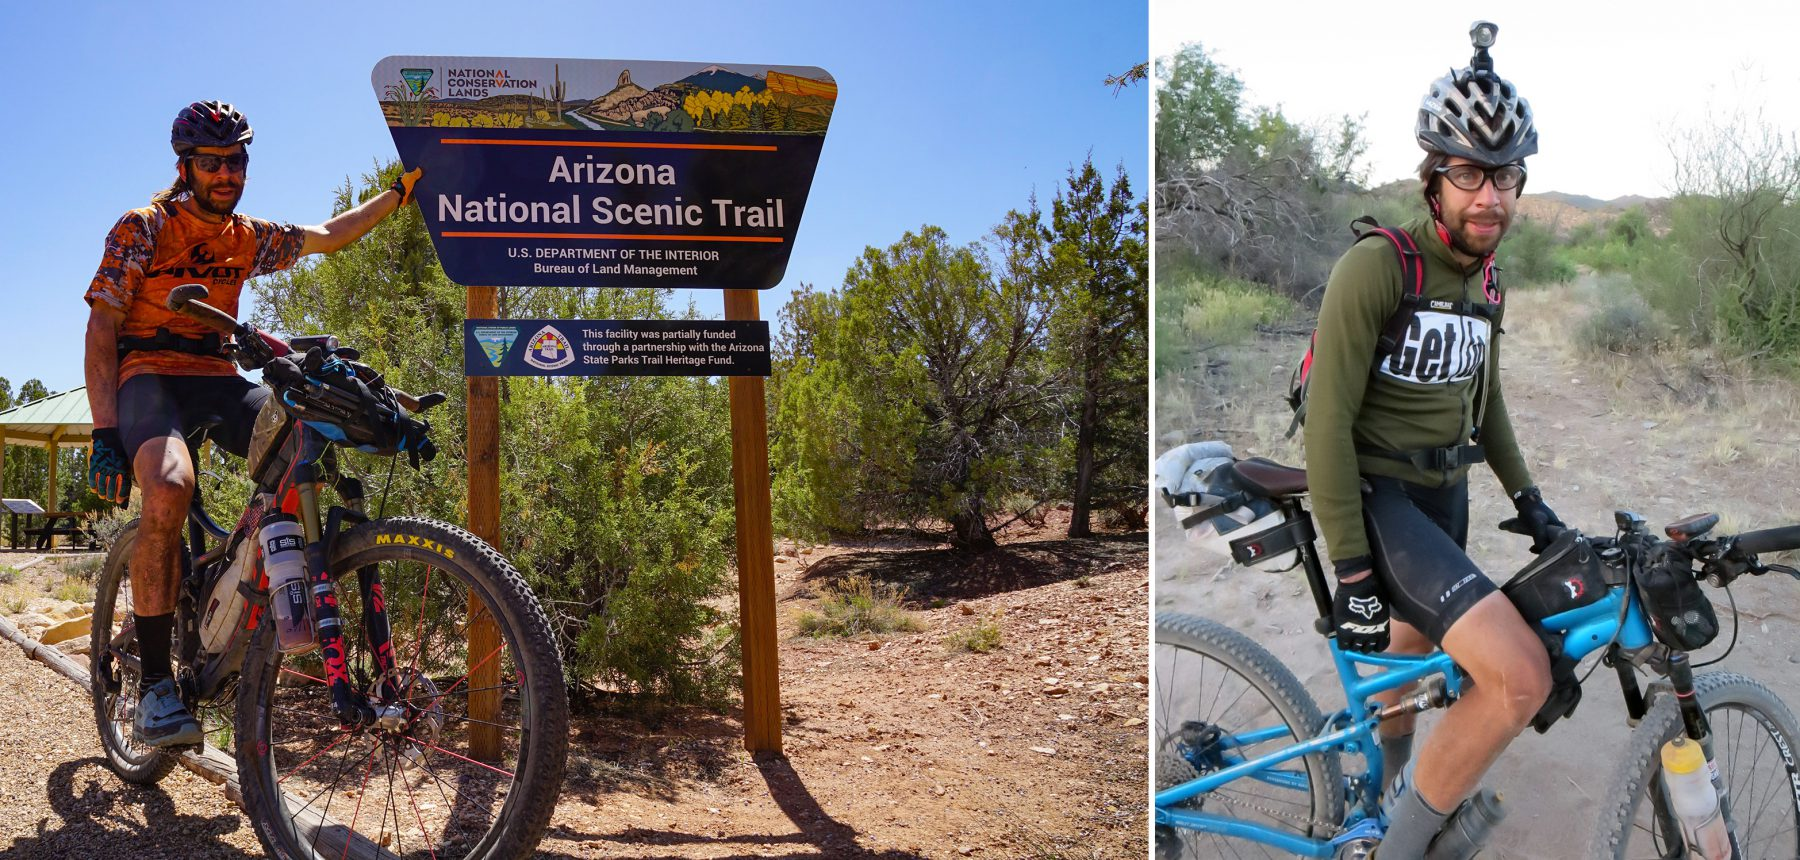 Kurt Refsnider at the finish of the AZT 750 (left) and after setting the record on the AZT 300 (right).